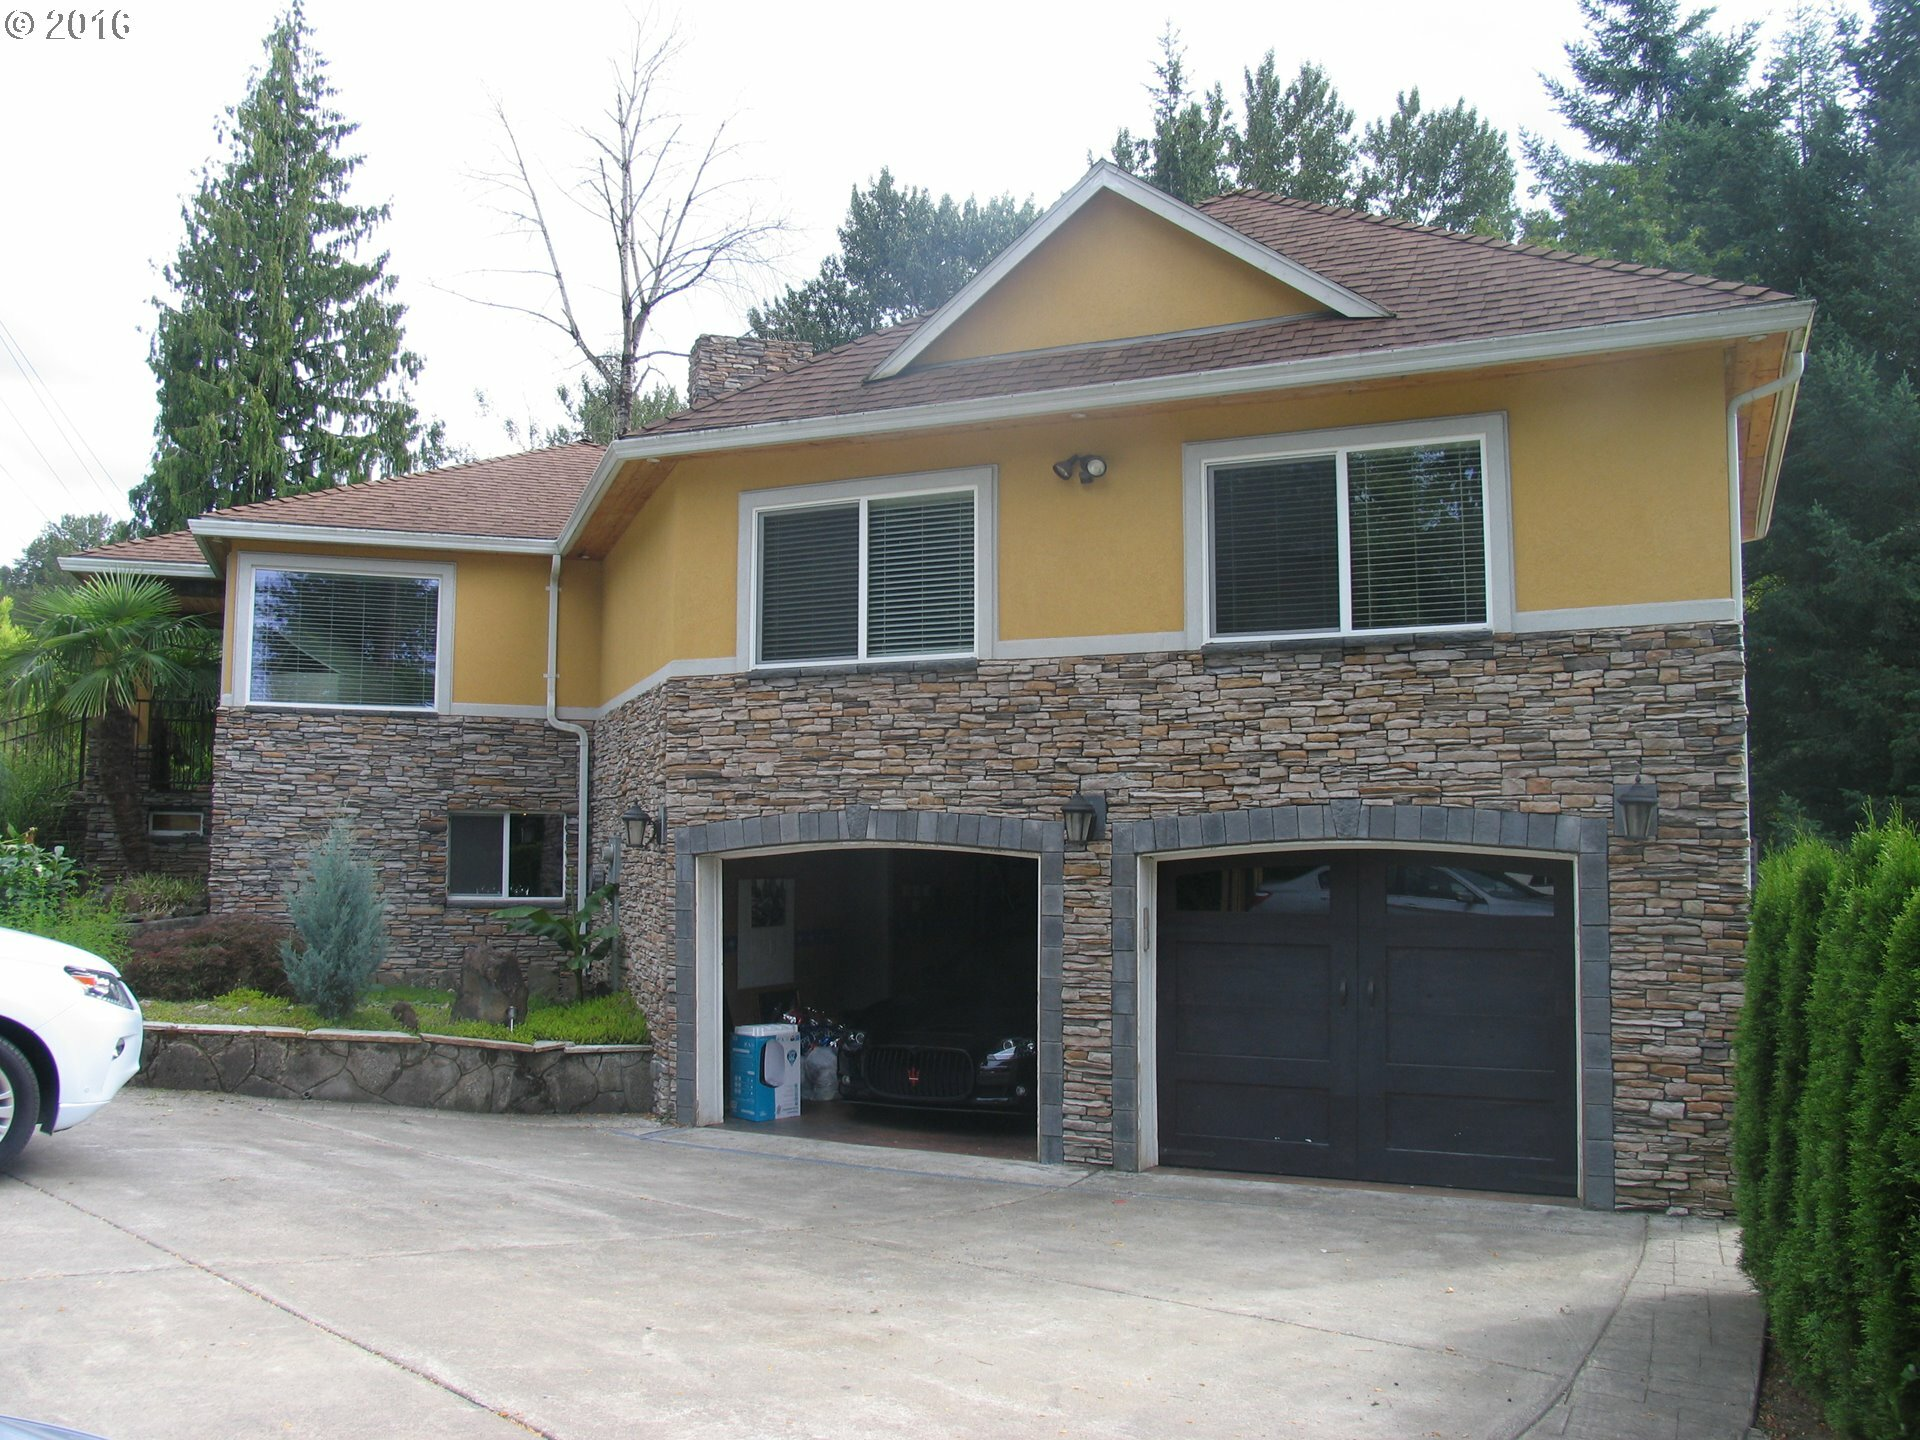 1155 Sw Towle Ave, Gresham, OR - USA (photo 5)